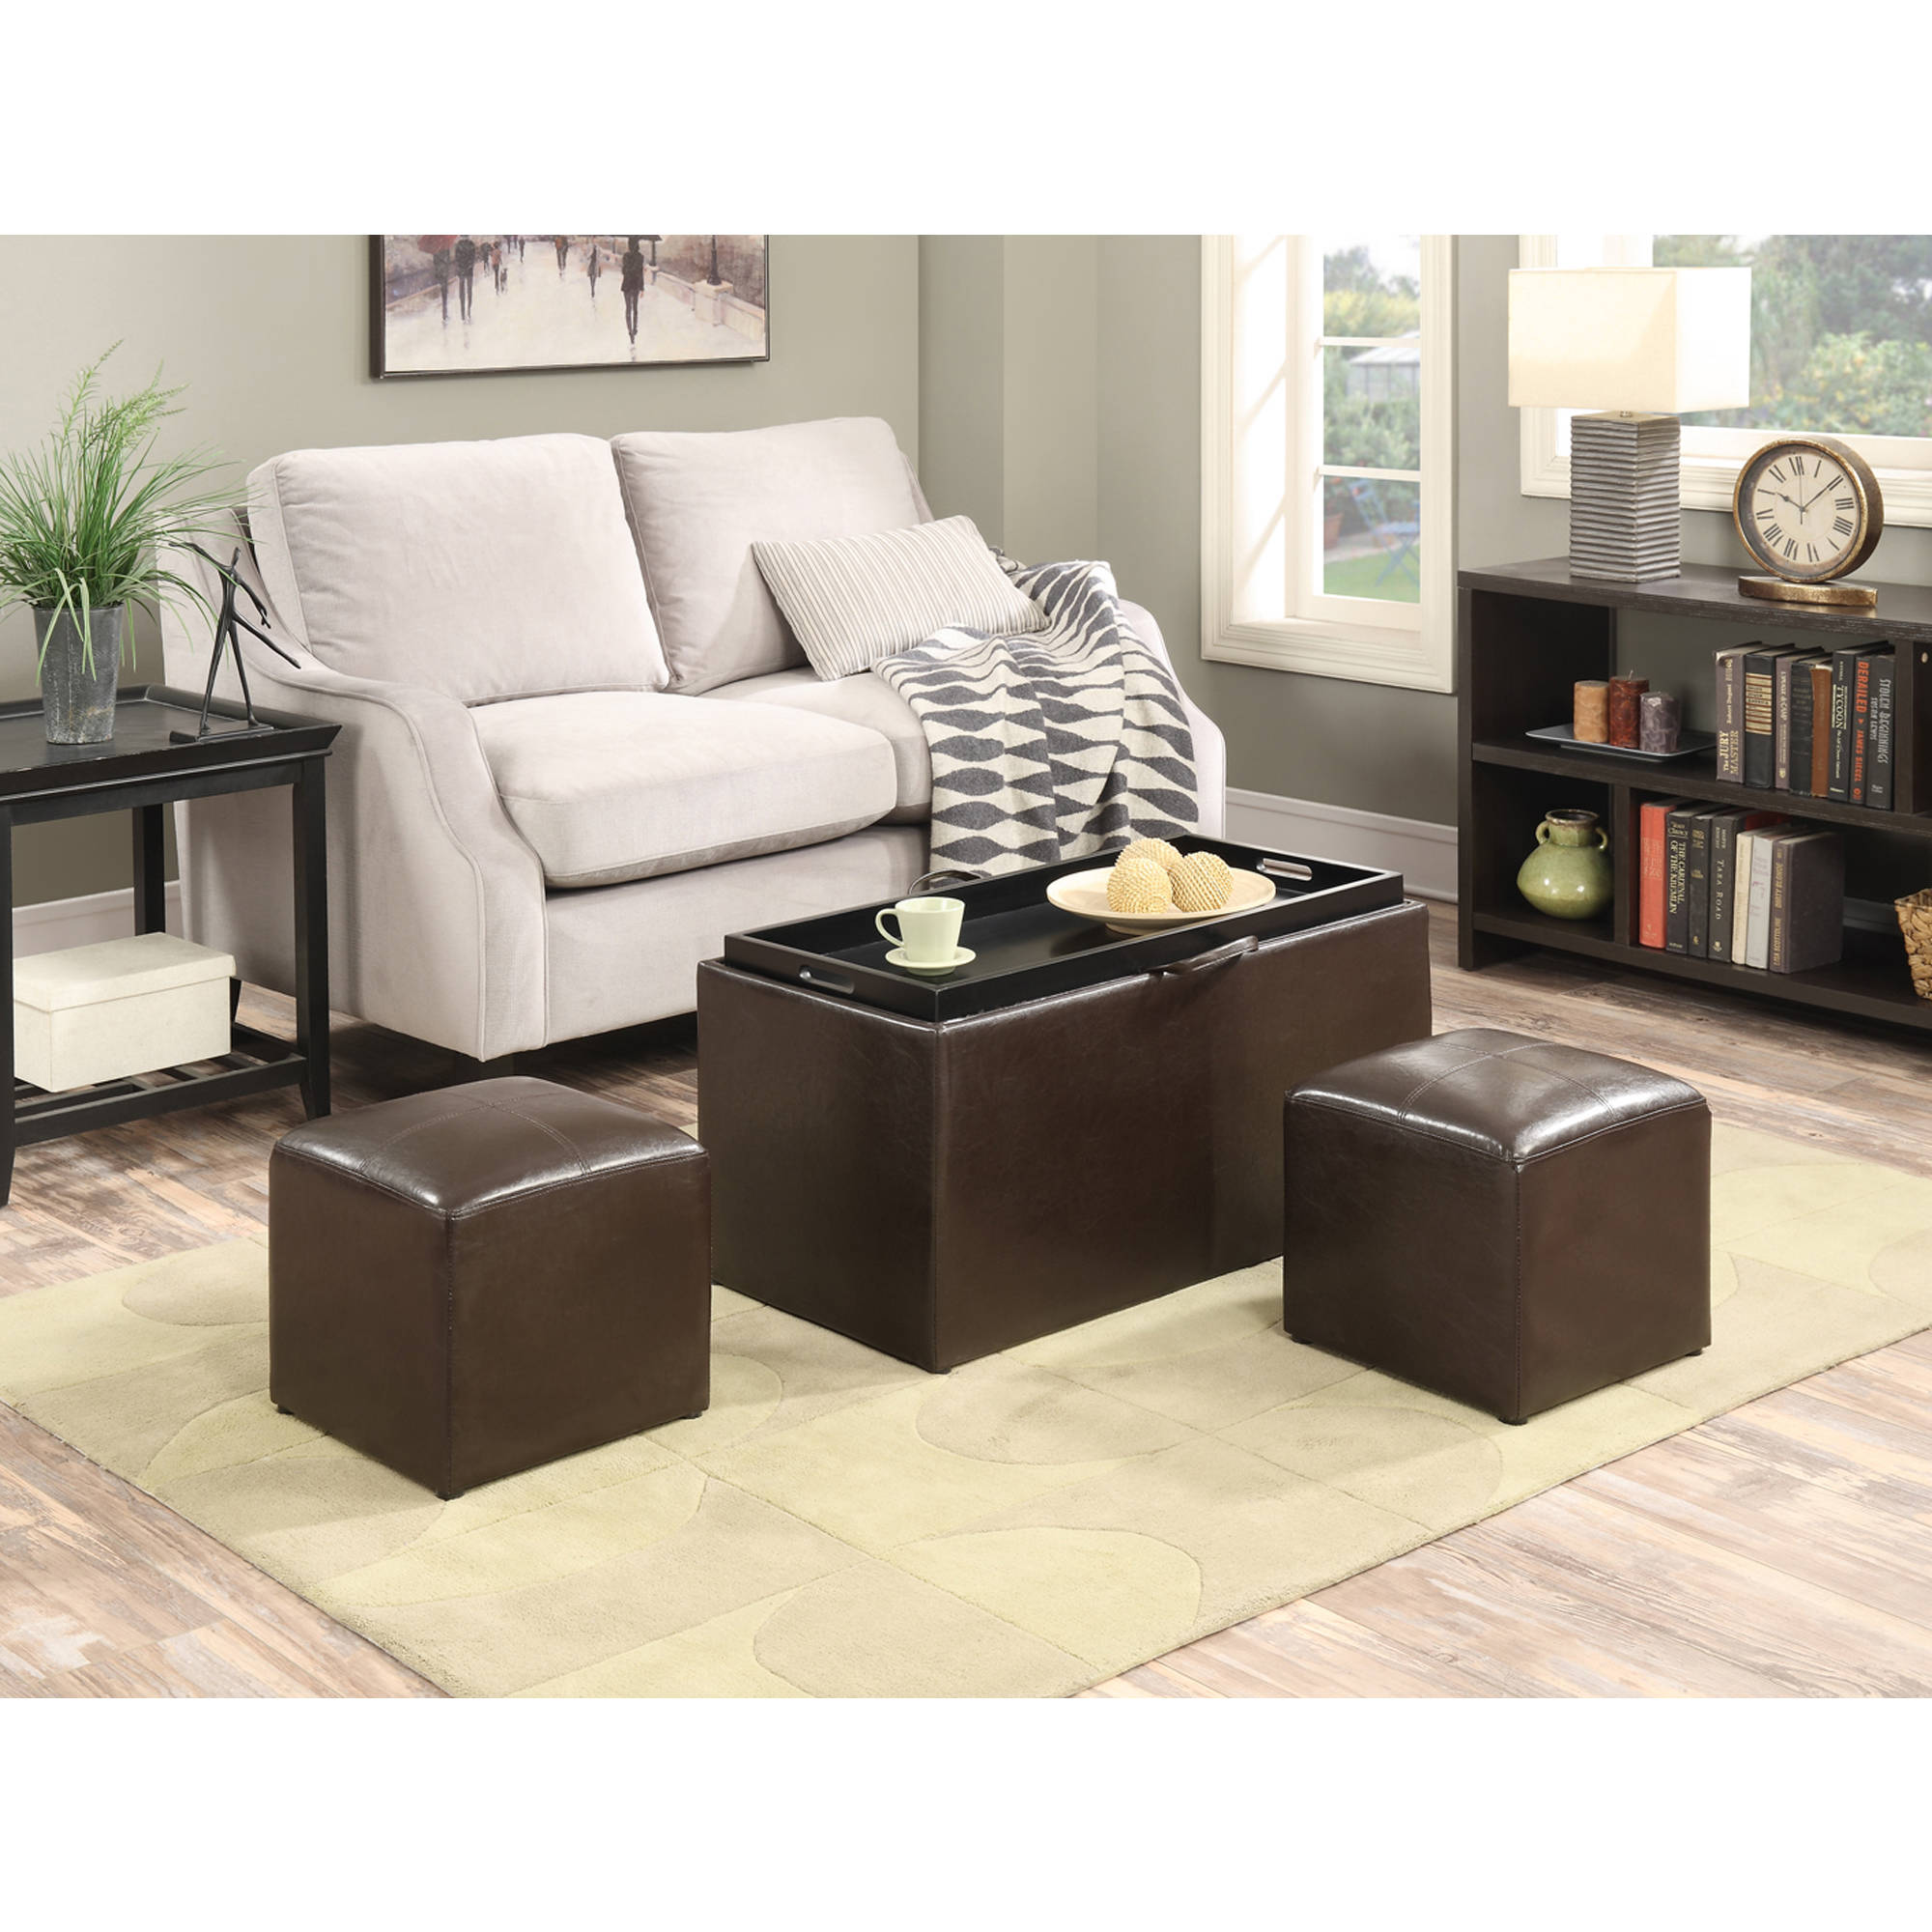 faux leather storage bench with 2 side ottomans multiple colors